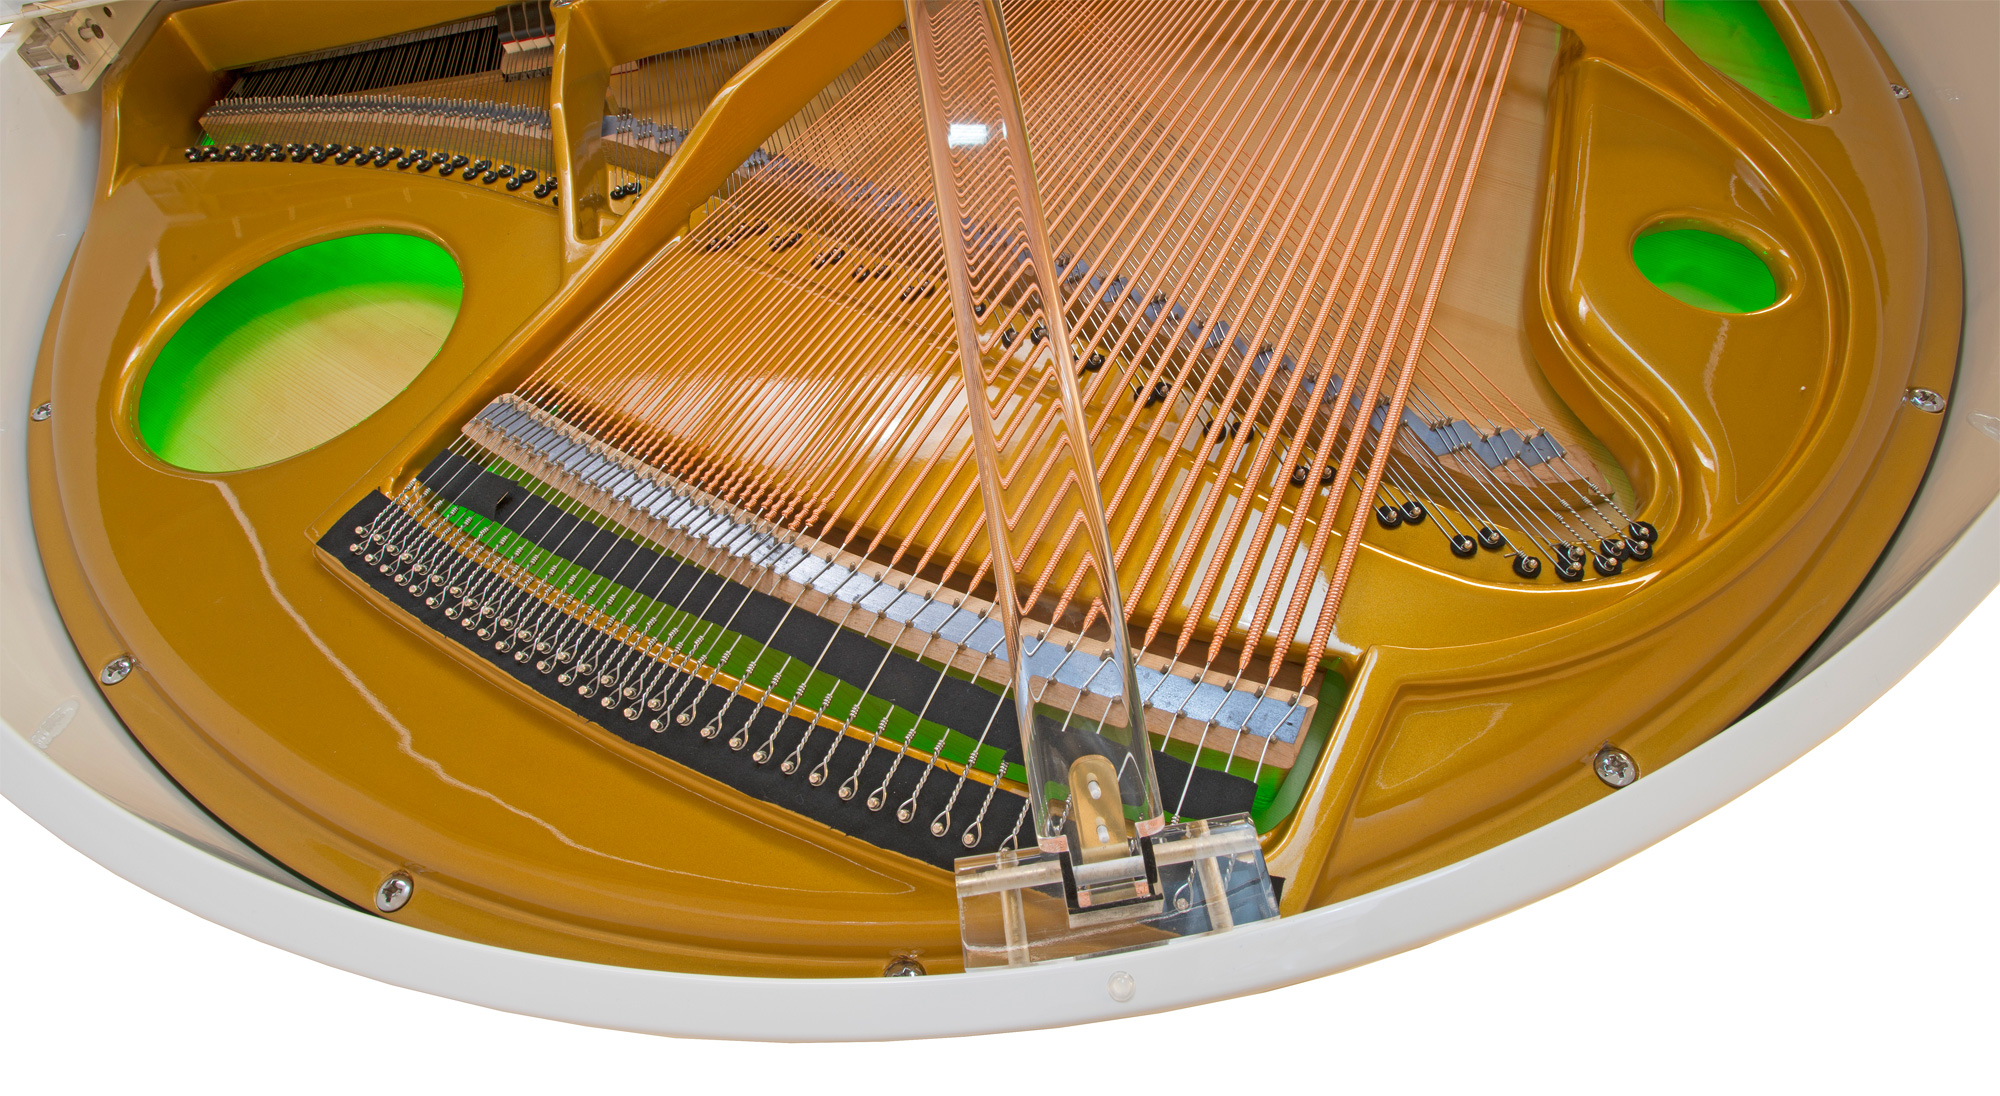 Goldfinch Launches The Sygnet Grand Piano For Superyachts With Northrop & Johnson 5